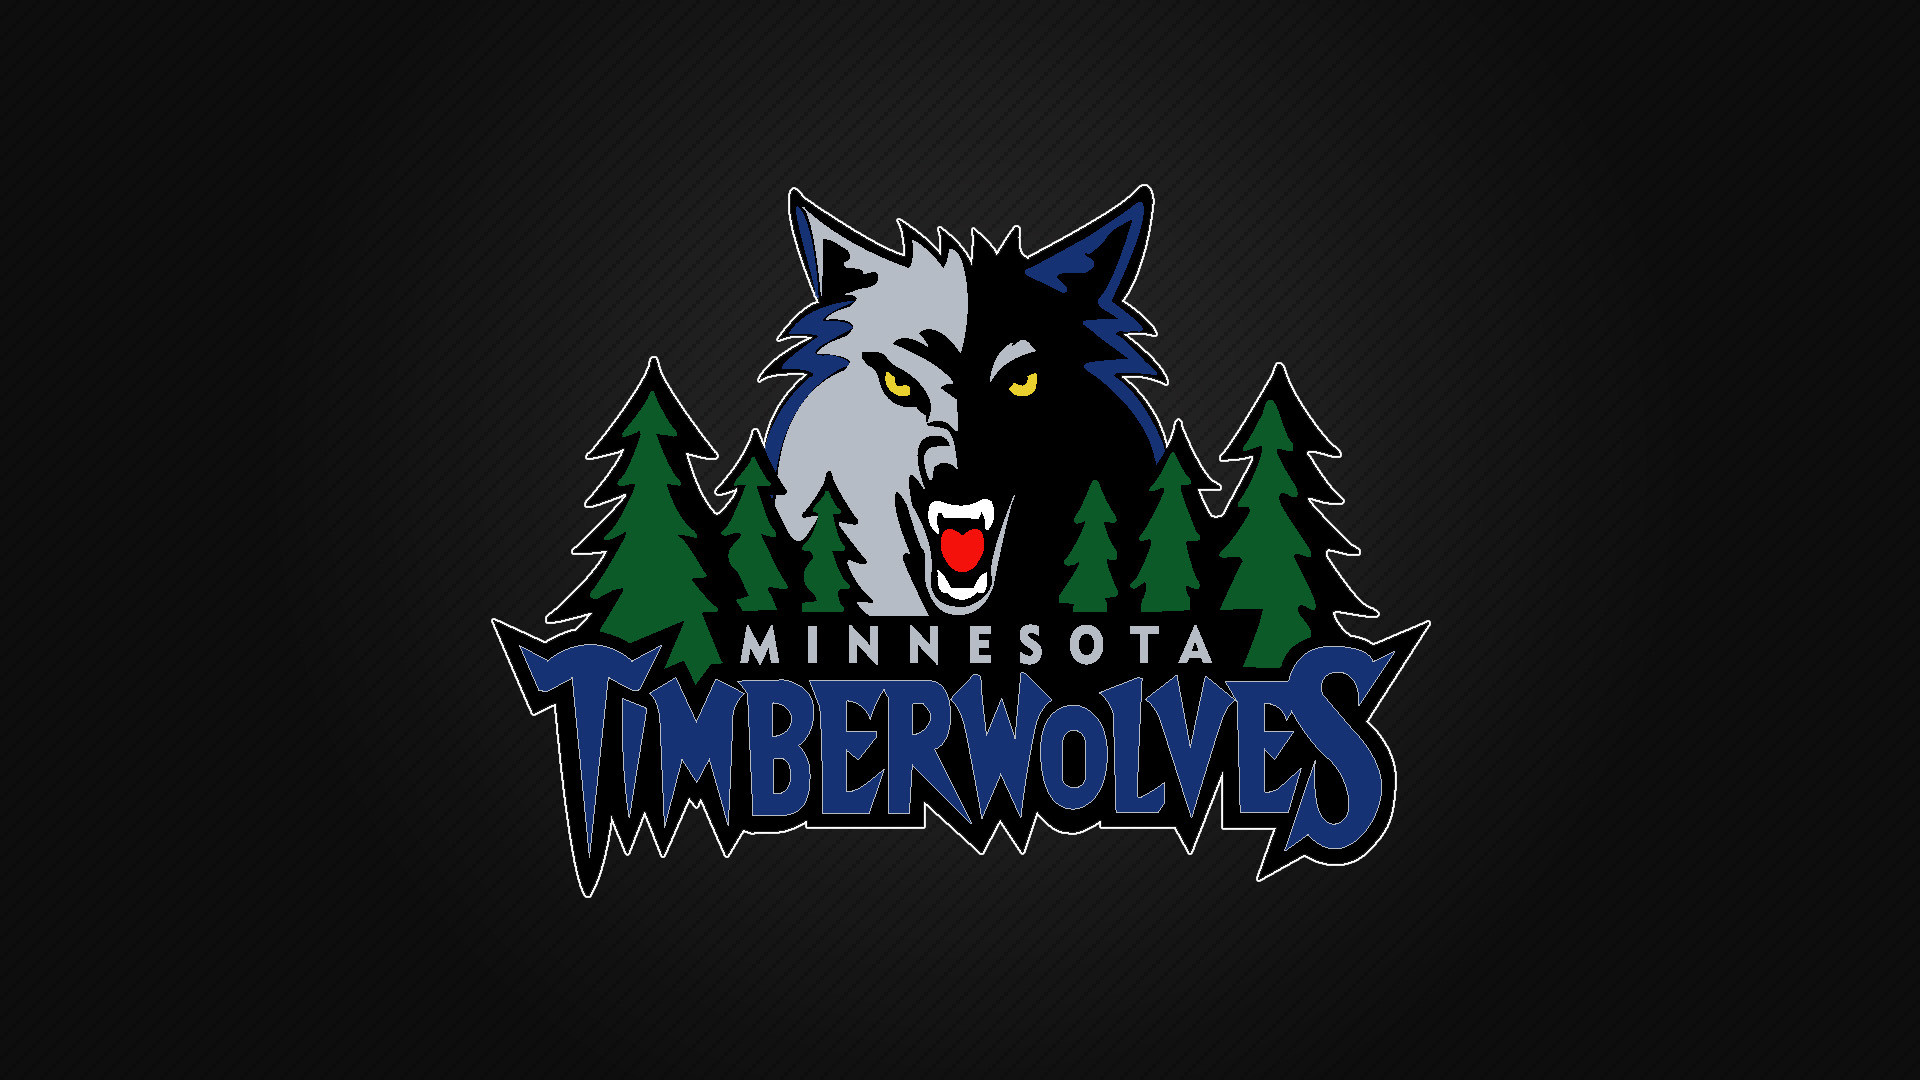 1920x1080 MINNESOTA TIMBERWOLVES nba basketball (21) wallpaper |  .